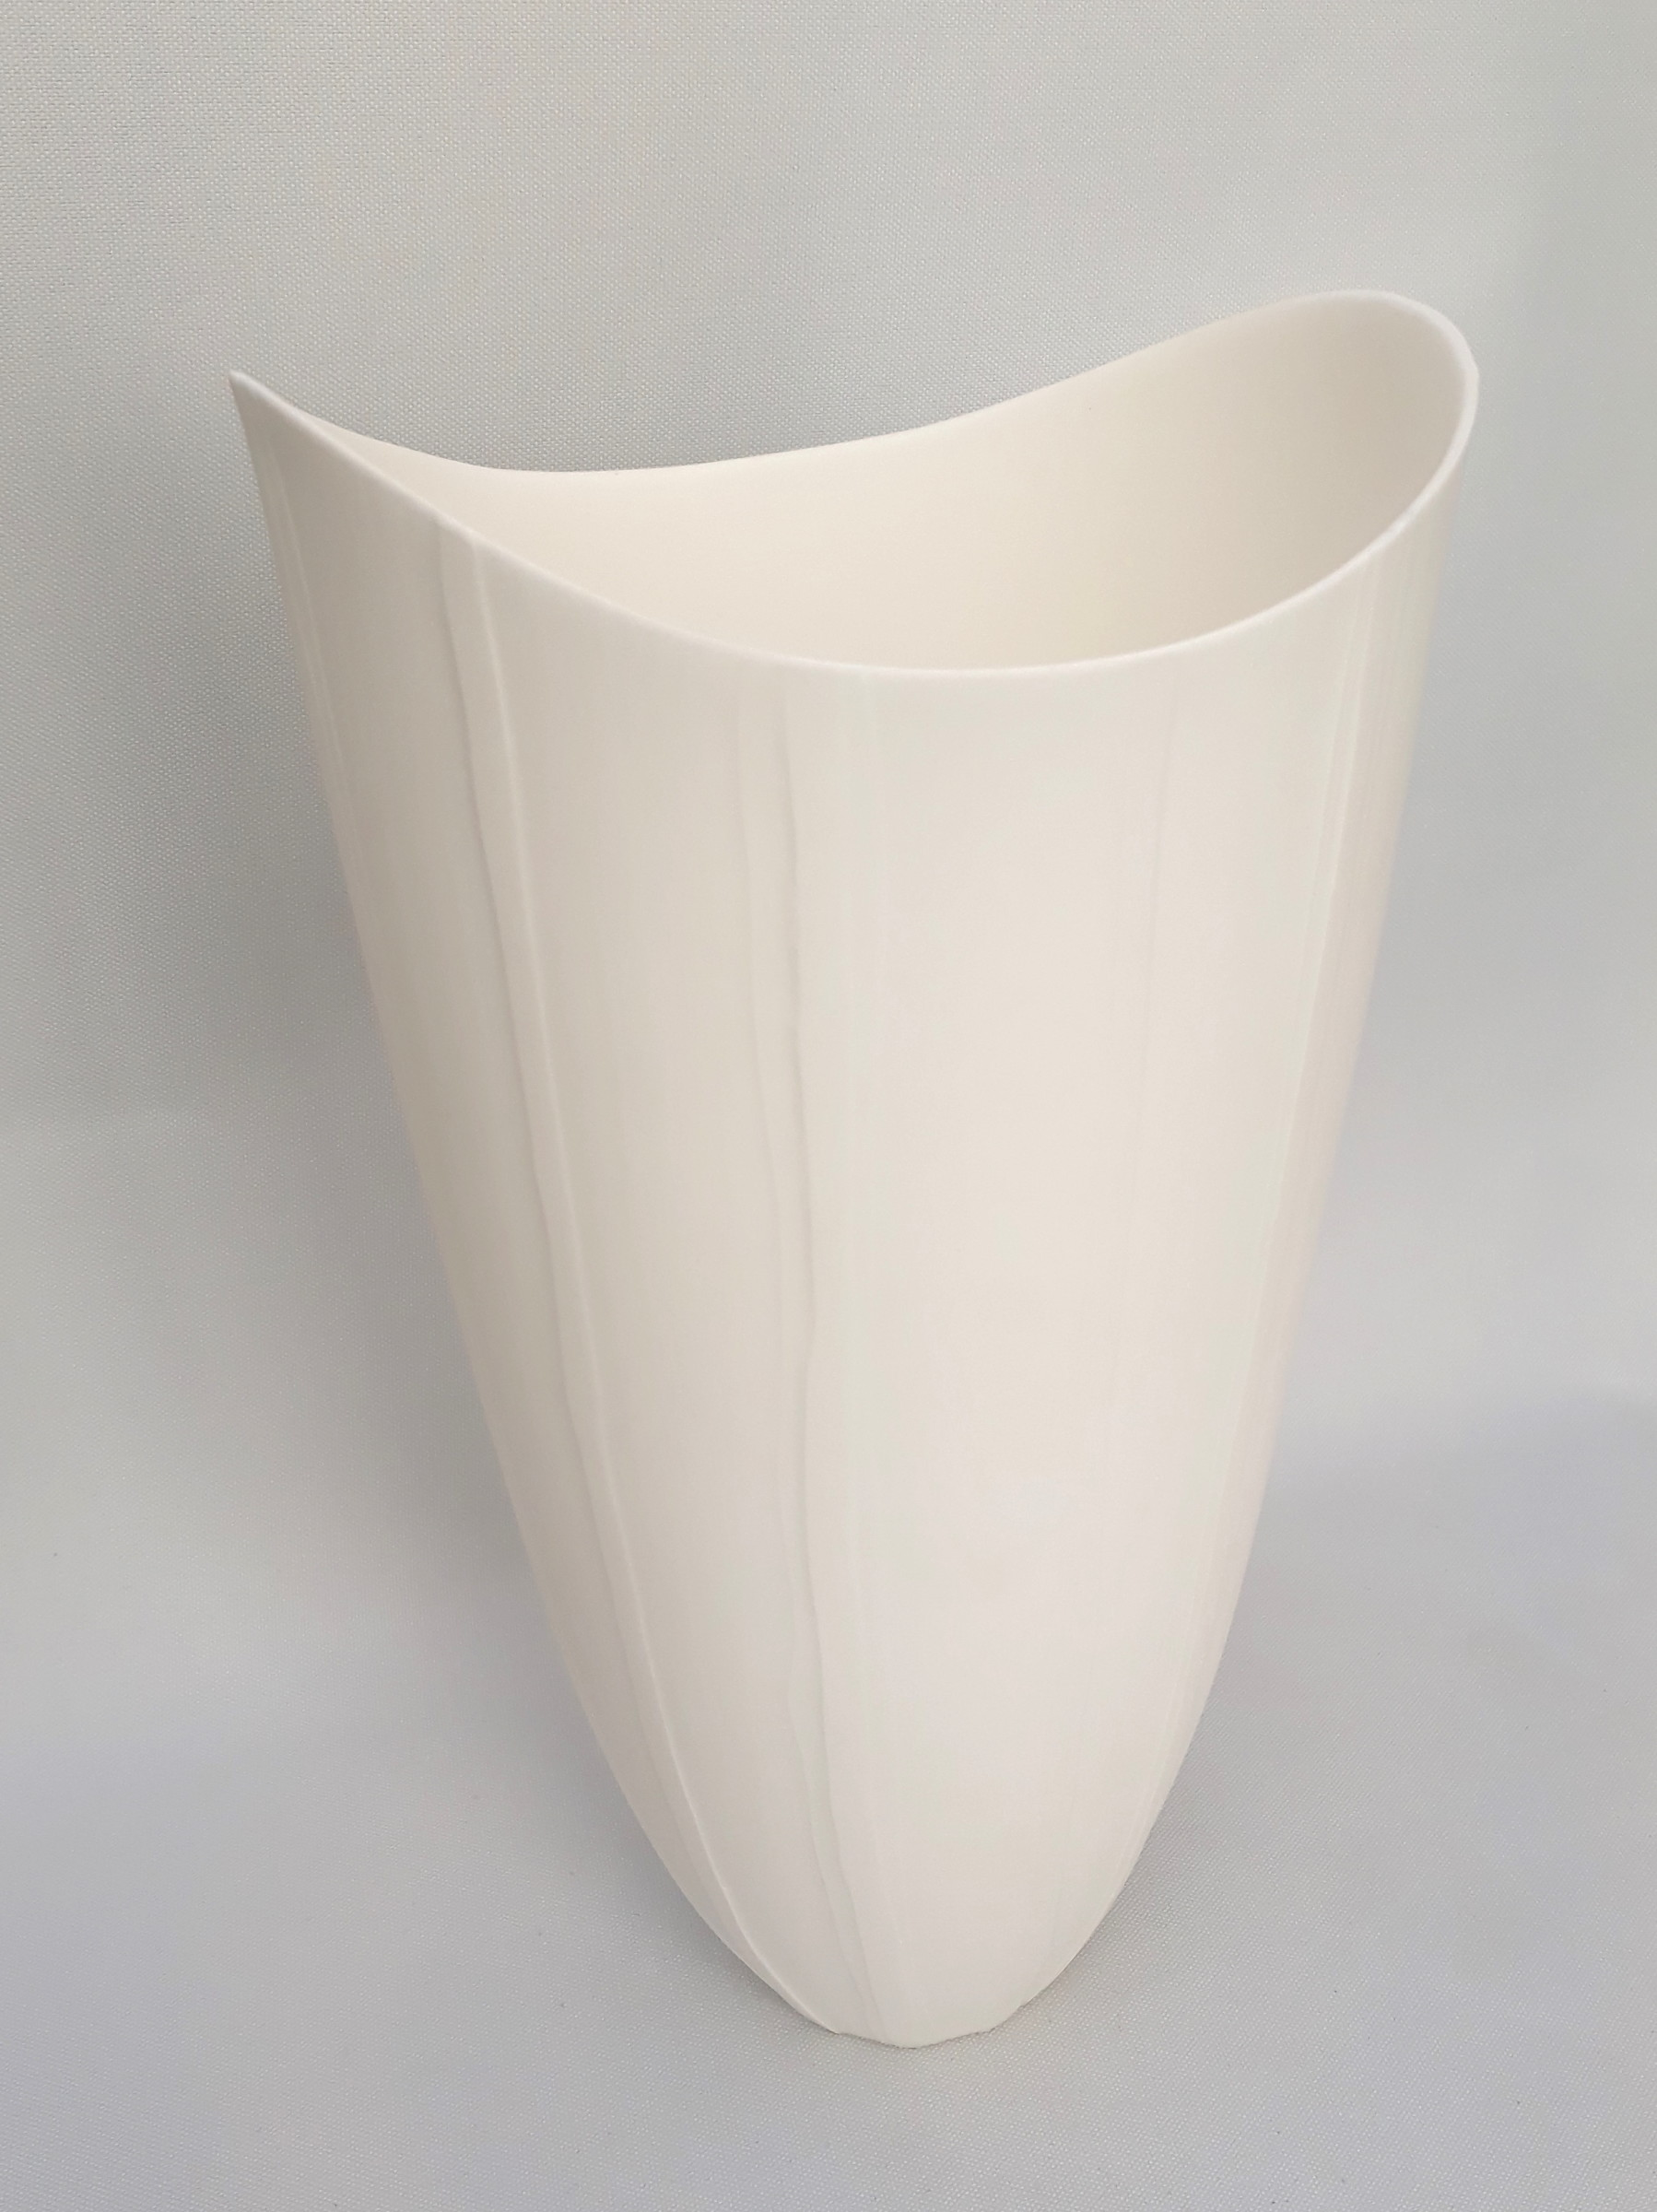 "<span class=""link fancybox-details-link""><a href=""/artists/60-sasha-wardell/works/4126-sasha-wardell-tall-ripple-vase-2017/"">View Detail Page</a></span><div class=""artist""><strong>Sasha Wardell</strong></div> <div class=""title""><em>Tall Ripple Vase</em>, 2017</div> <div class=""signed_and_dated"">inscribed with artist initials on base</div> <div class=""medium"">layered and sliced bone china</div> <div class=""dimensions"">h. 23 x w. 14 cm</div><div class=""copyright_line"">OwnArt: £ 21 x 10 Months, 0% APR</div>"